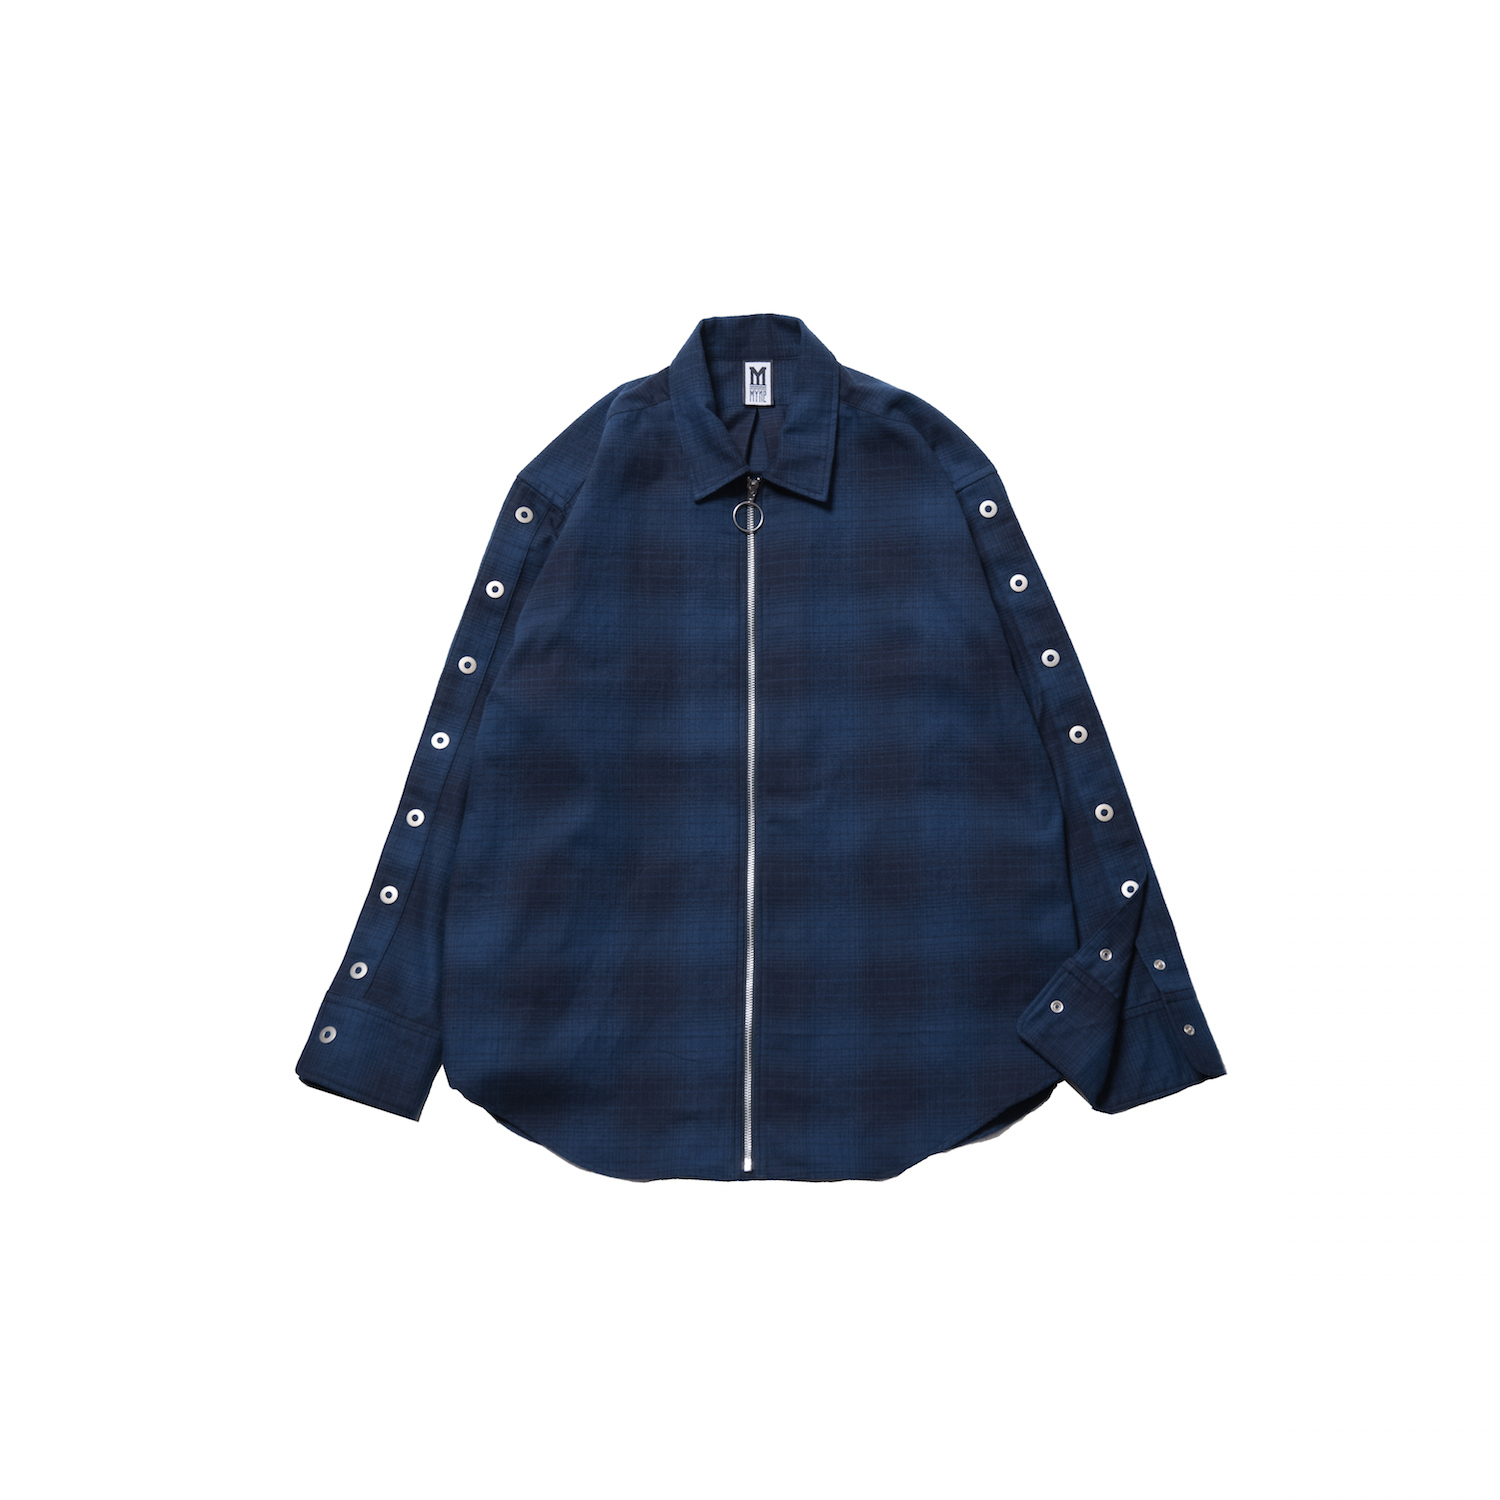 CHECK RING ZIP-UP SHIRTS  - 画像3